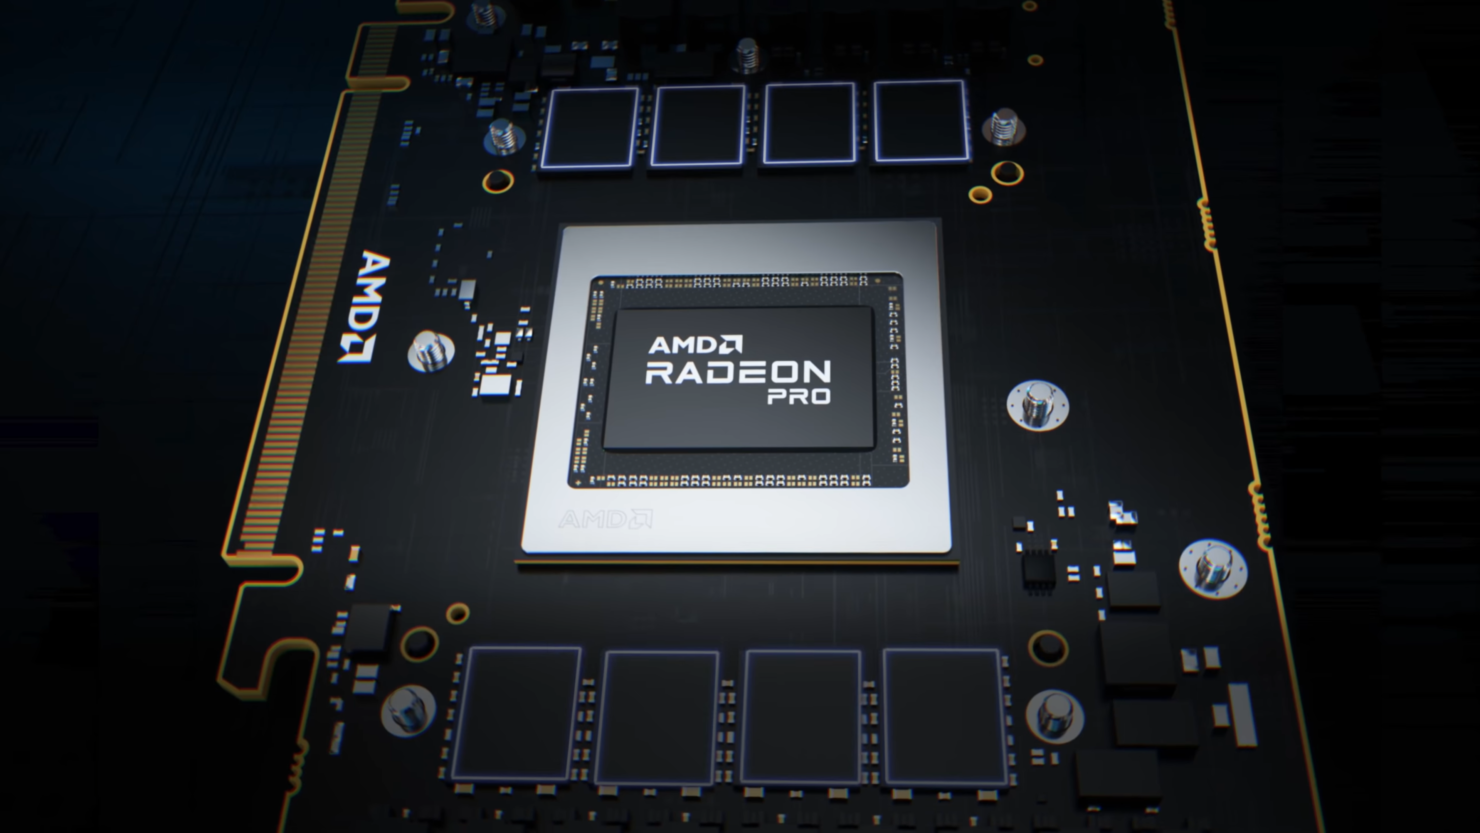 amd-radeon-pro-w6800x-duo-'dual-rdna-2-gpu'-graphics-card-outperforms-nvidia-geforce-rtx-3090-&-rtx-a6000-in-octane-render